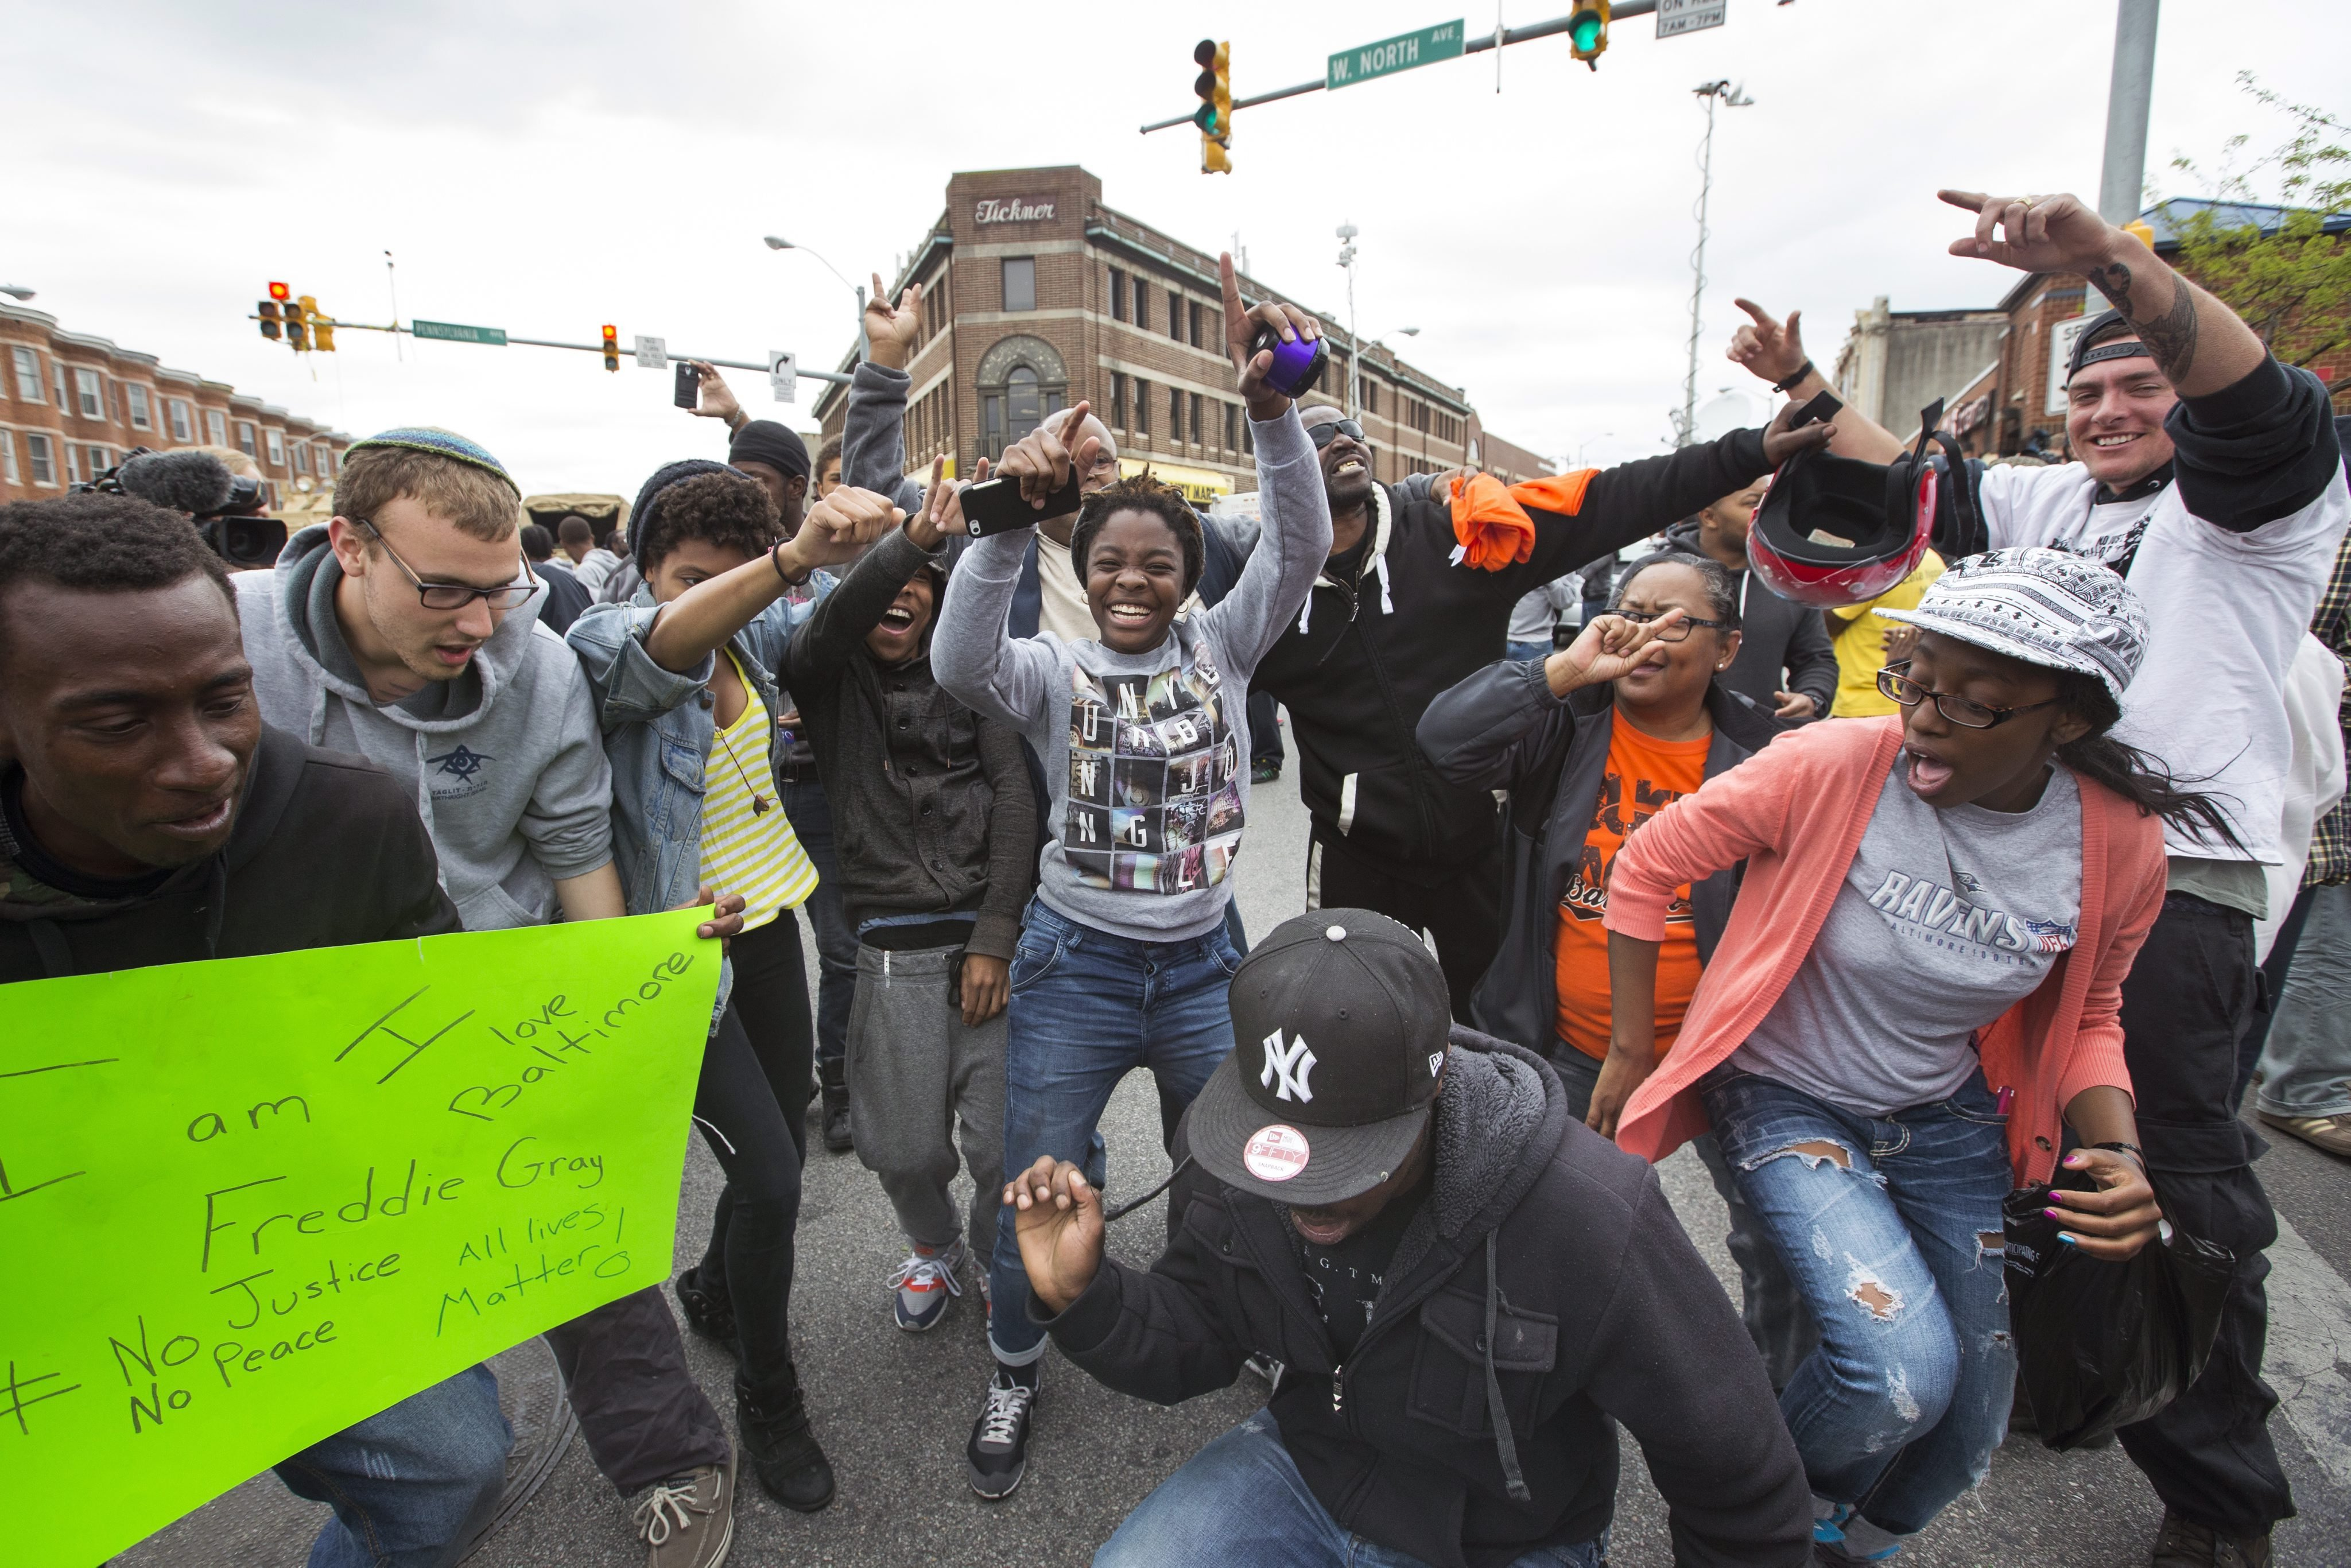 People celebrate in the streets of the Sandtown neighborhood in Baltimore after State Attorney Marilyn Mosby announced that six police officers are being charged in the death of Freddie Gray, in Baltimore on May 1, 2015.